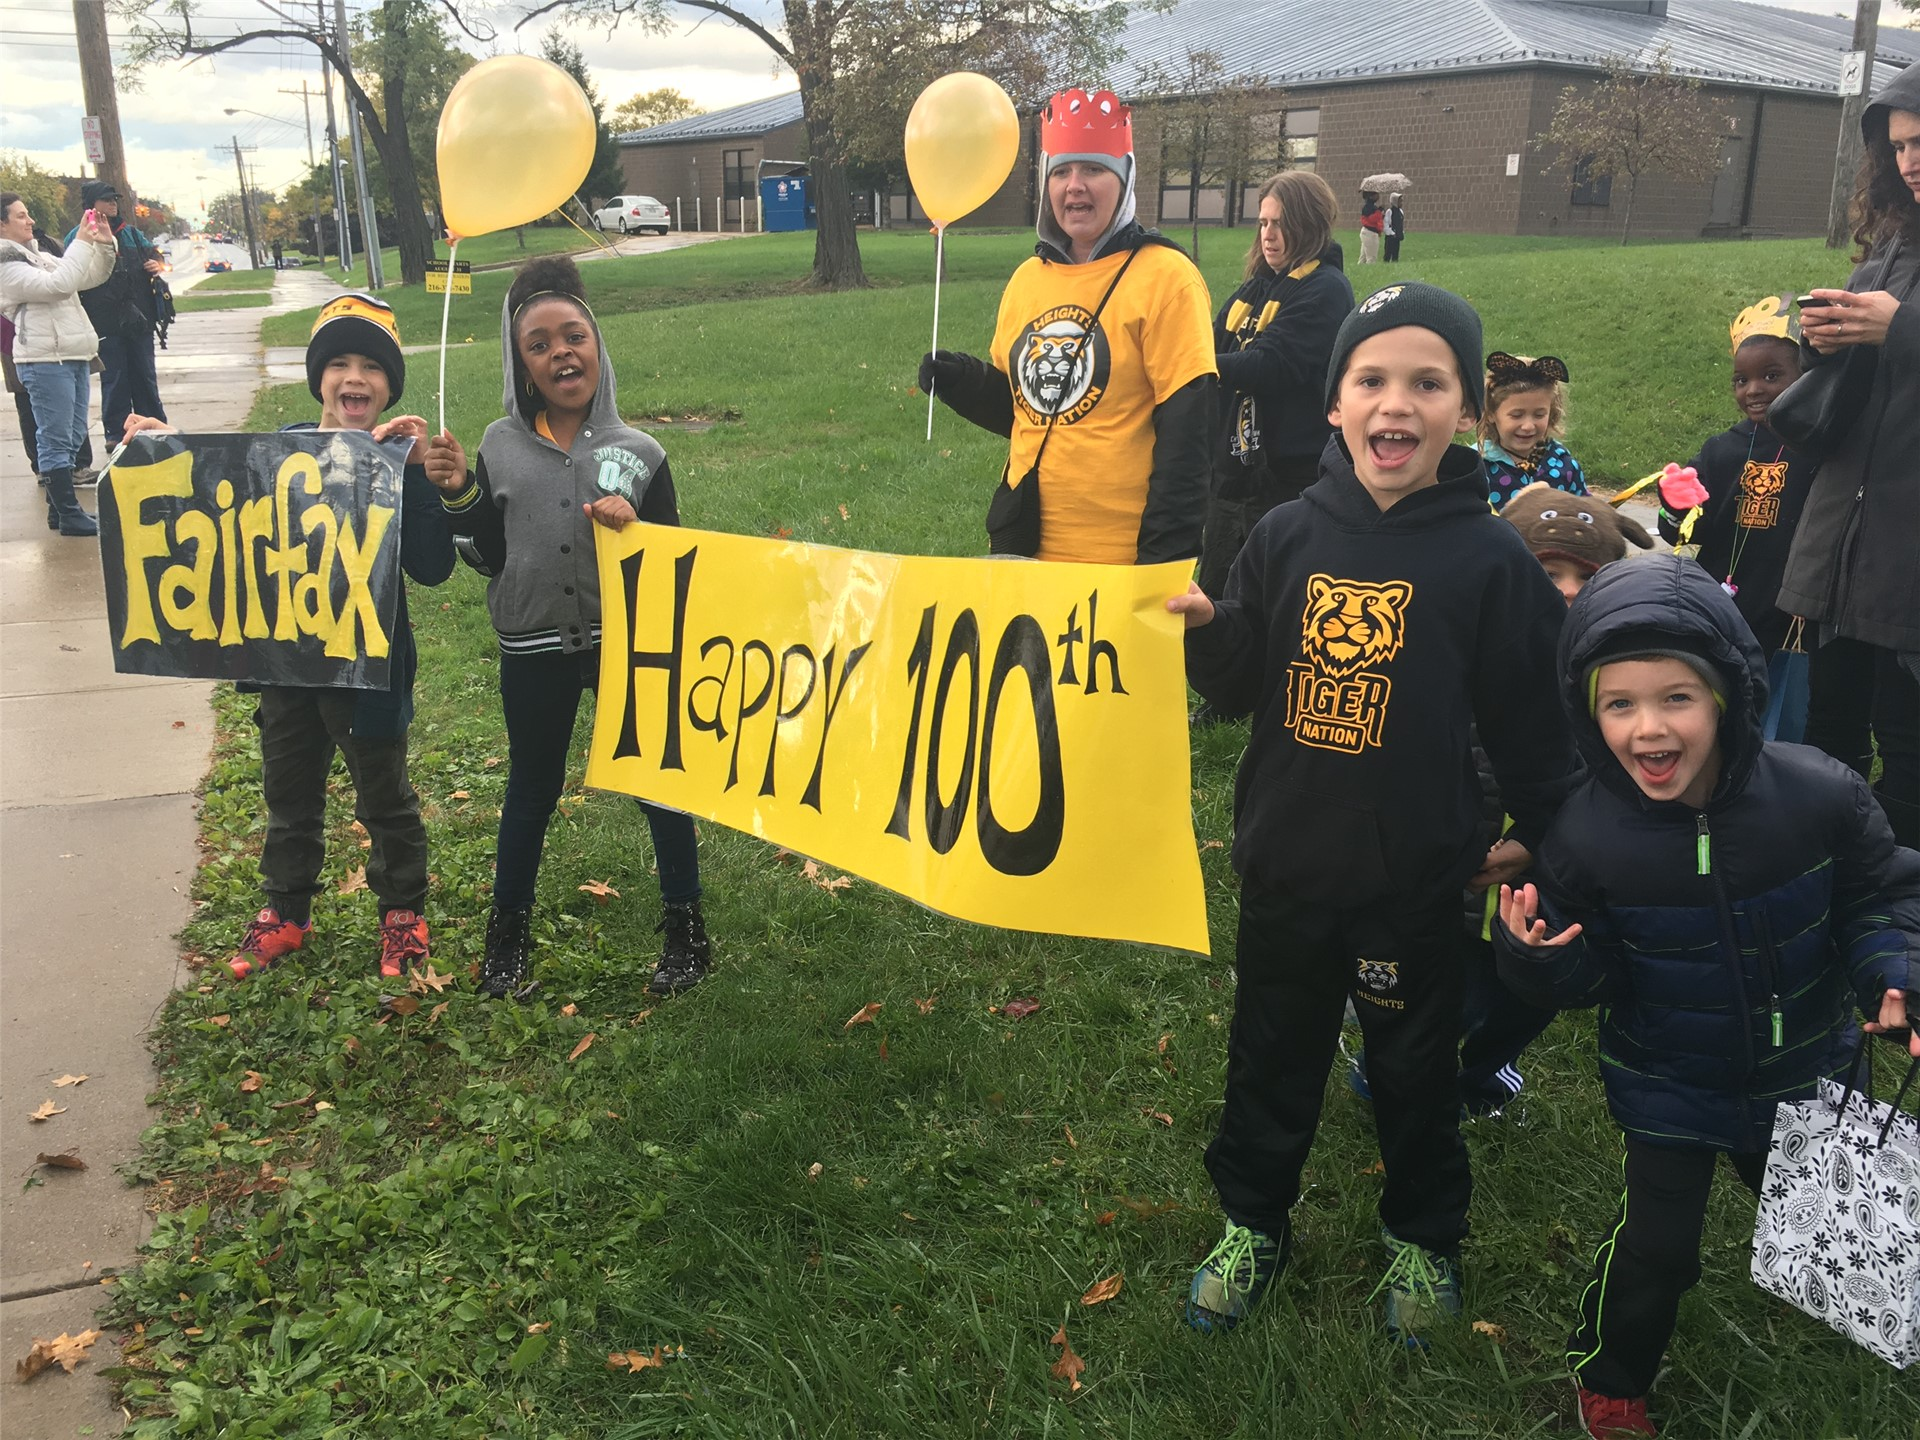 Students celebrate 100 years of Fairfax at Homecoming